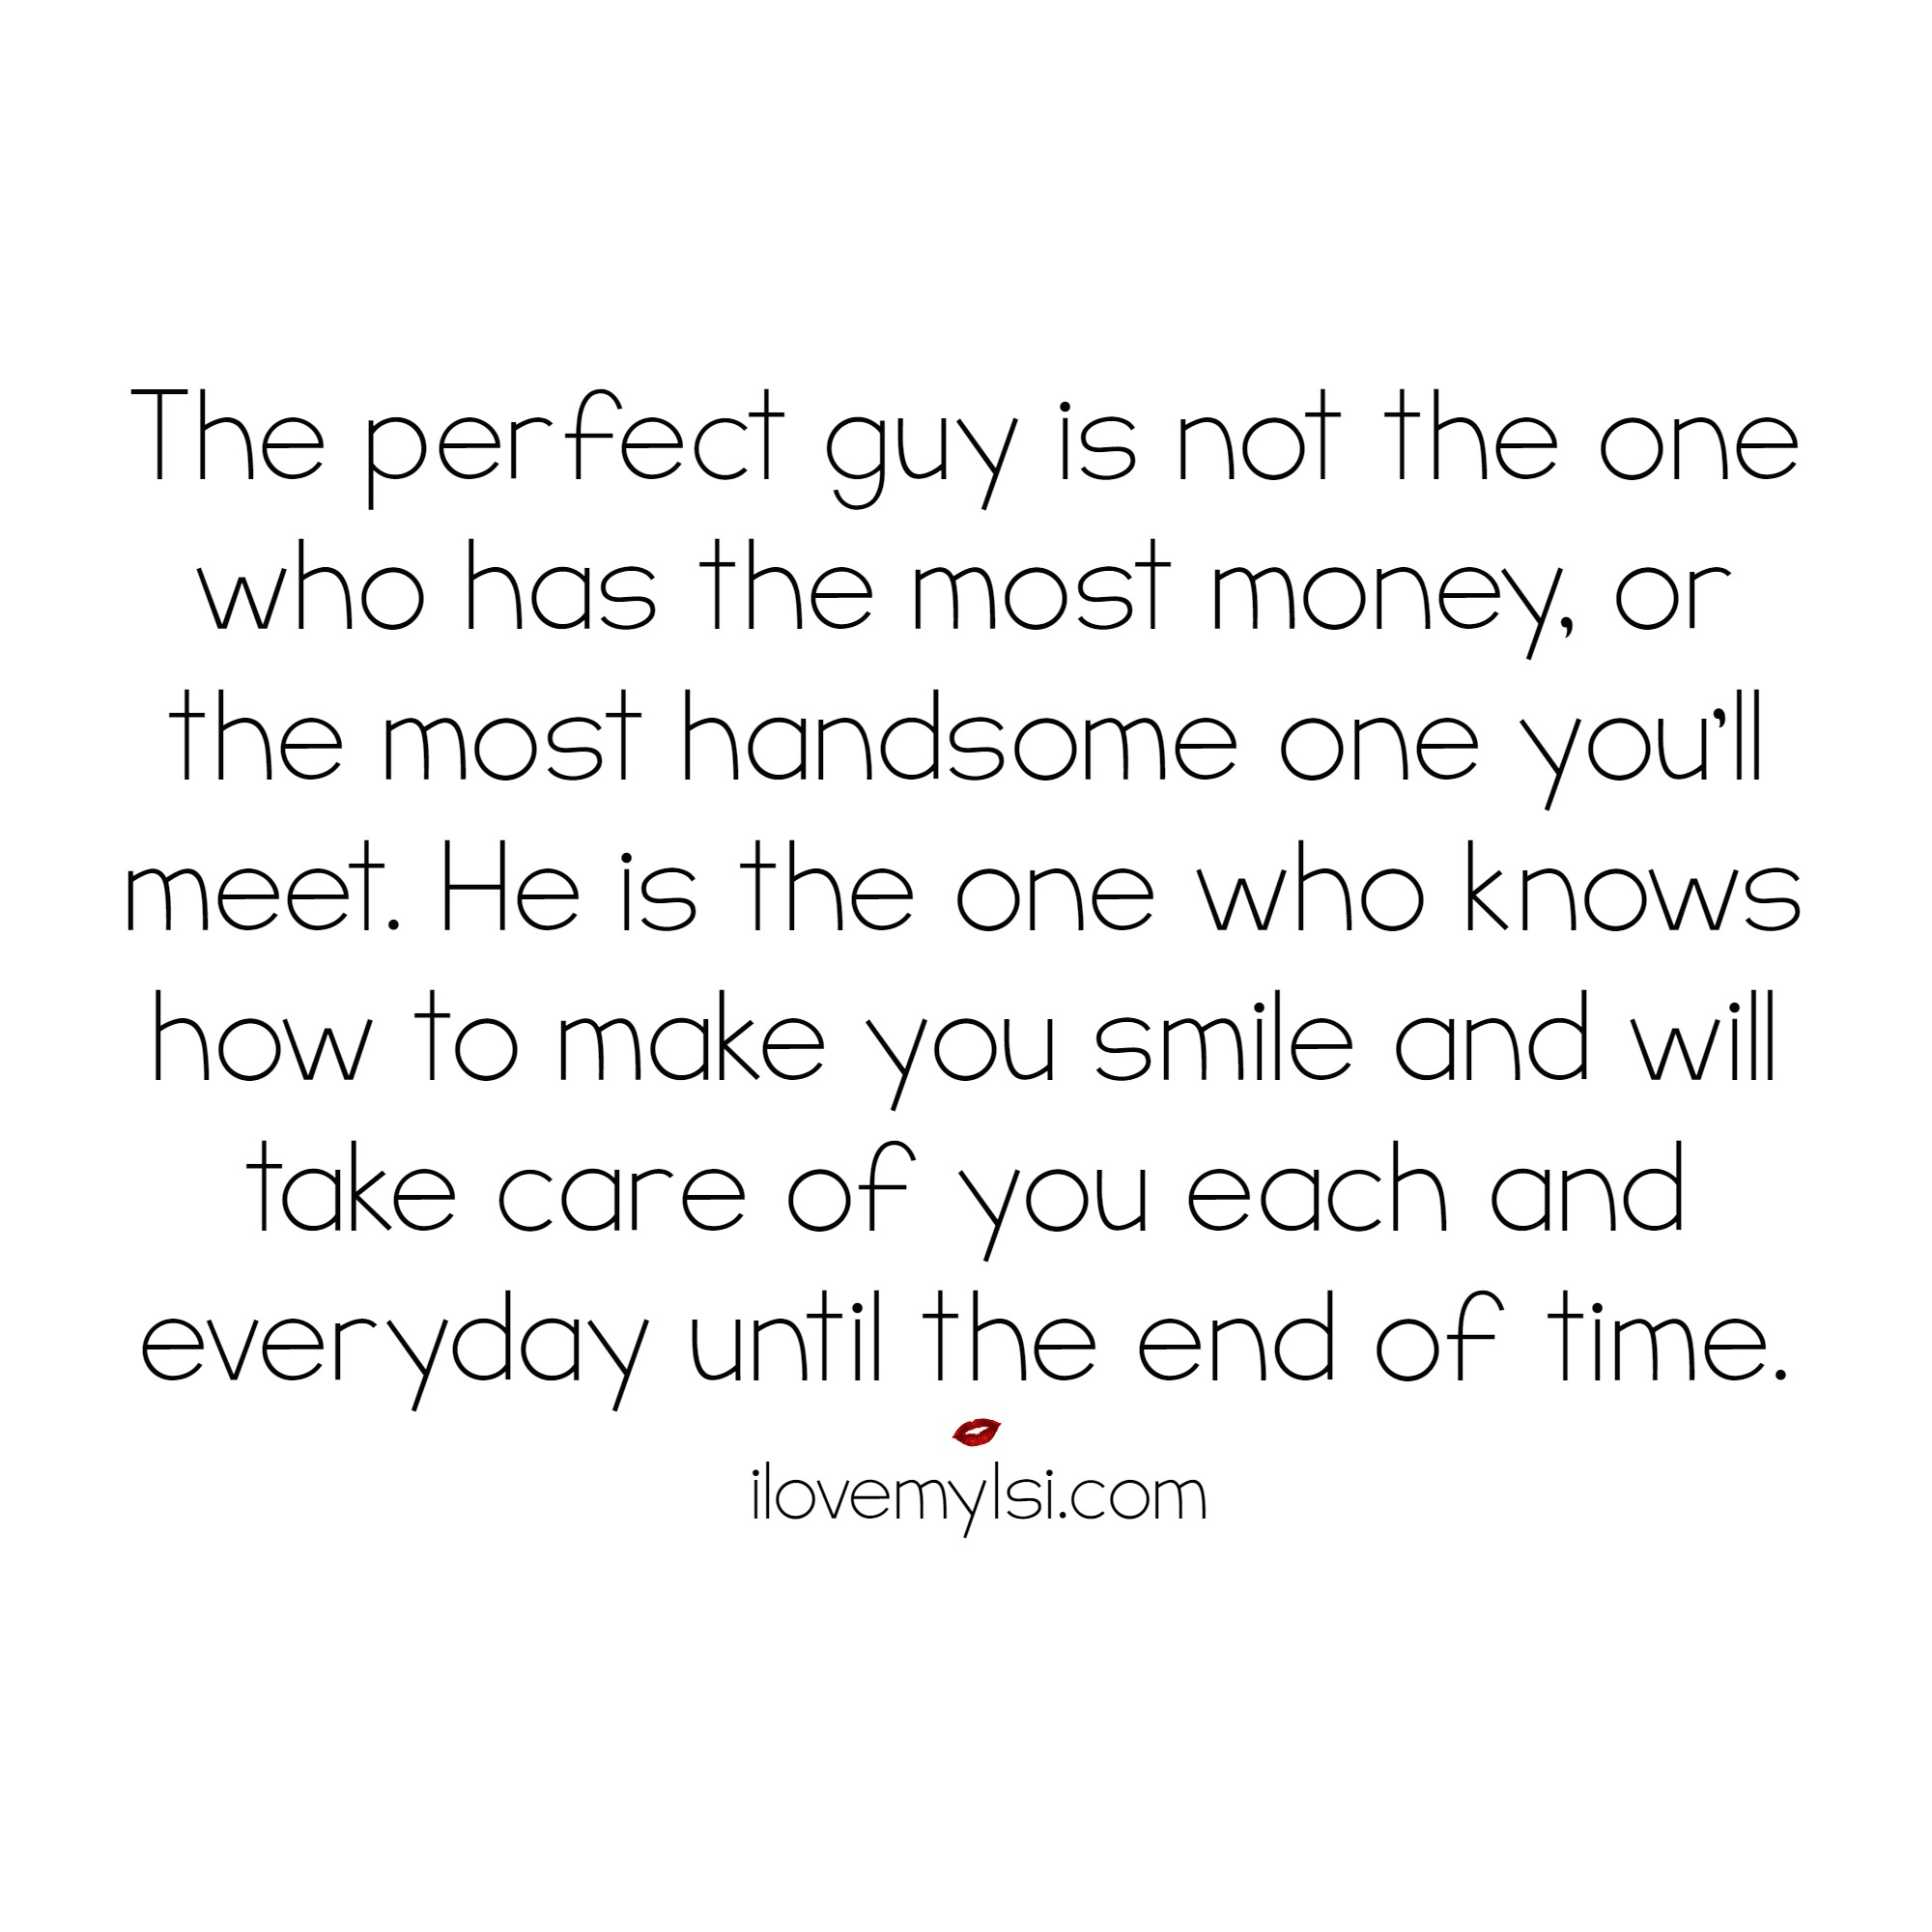 I Love You Quotes: The Perfect Guy